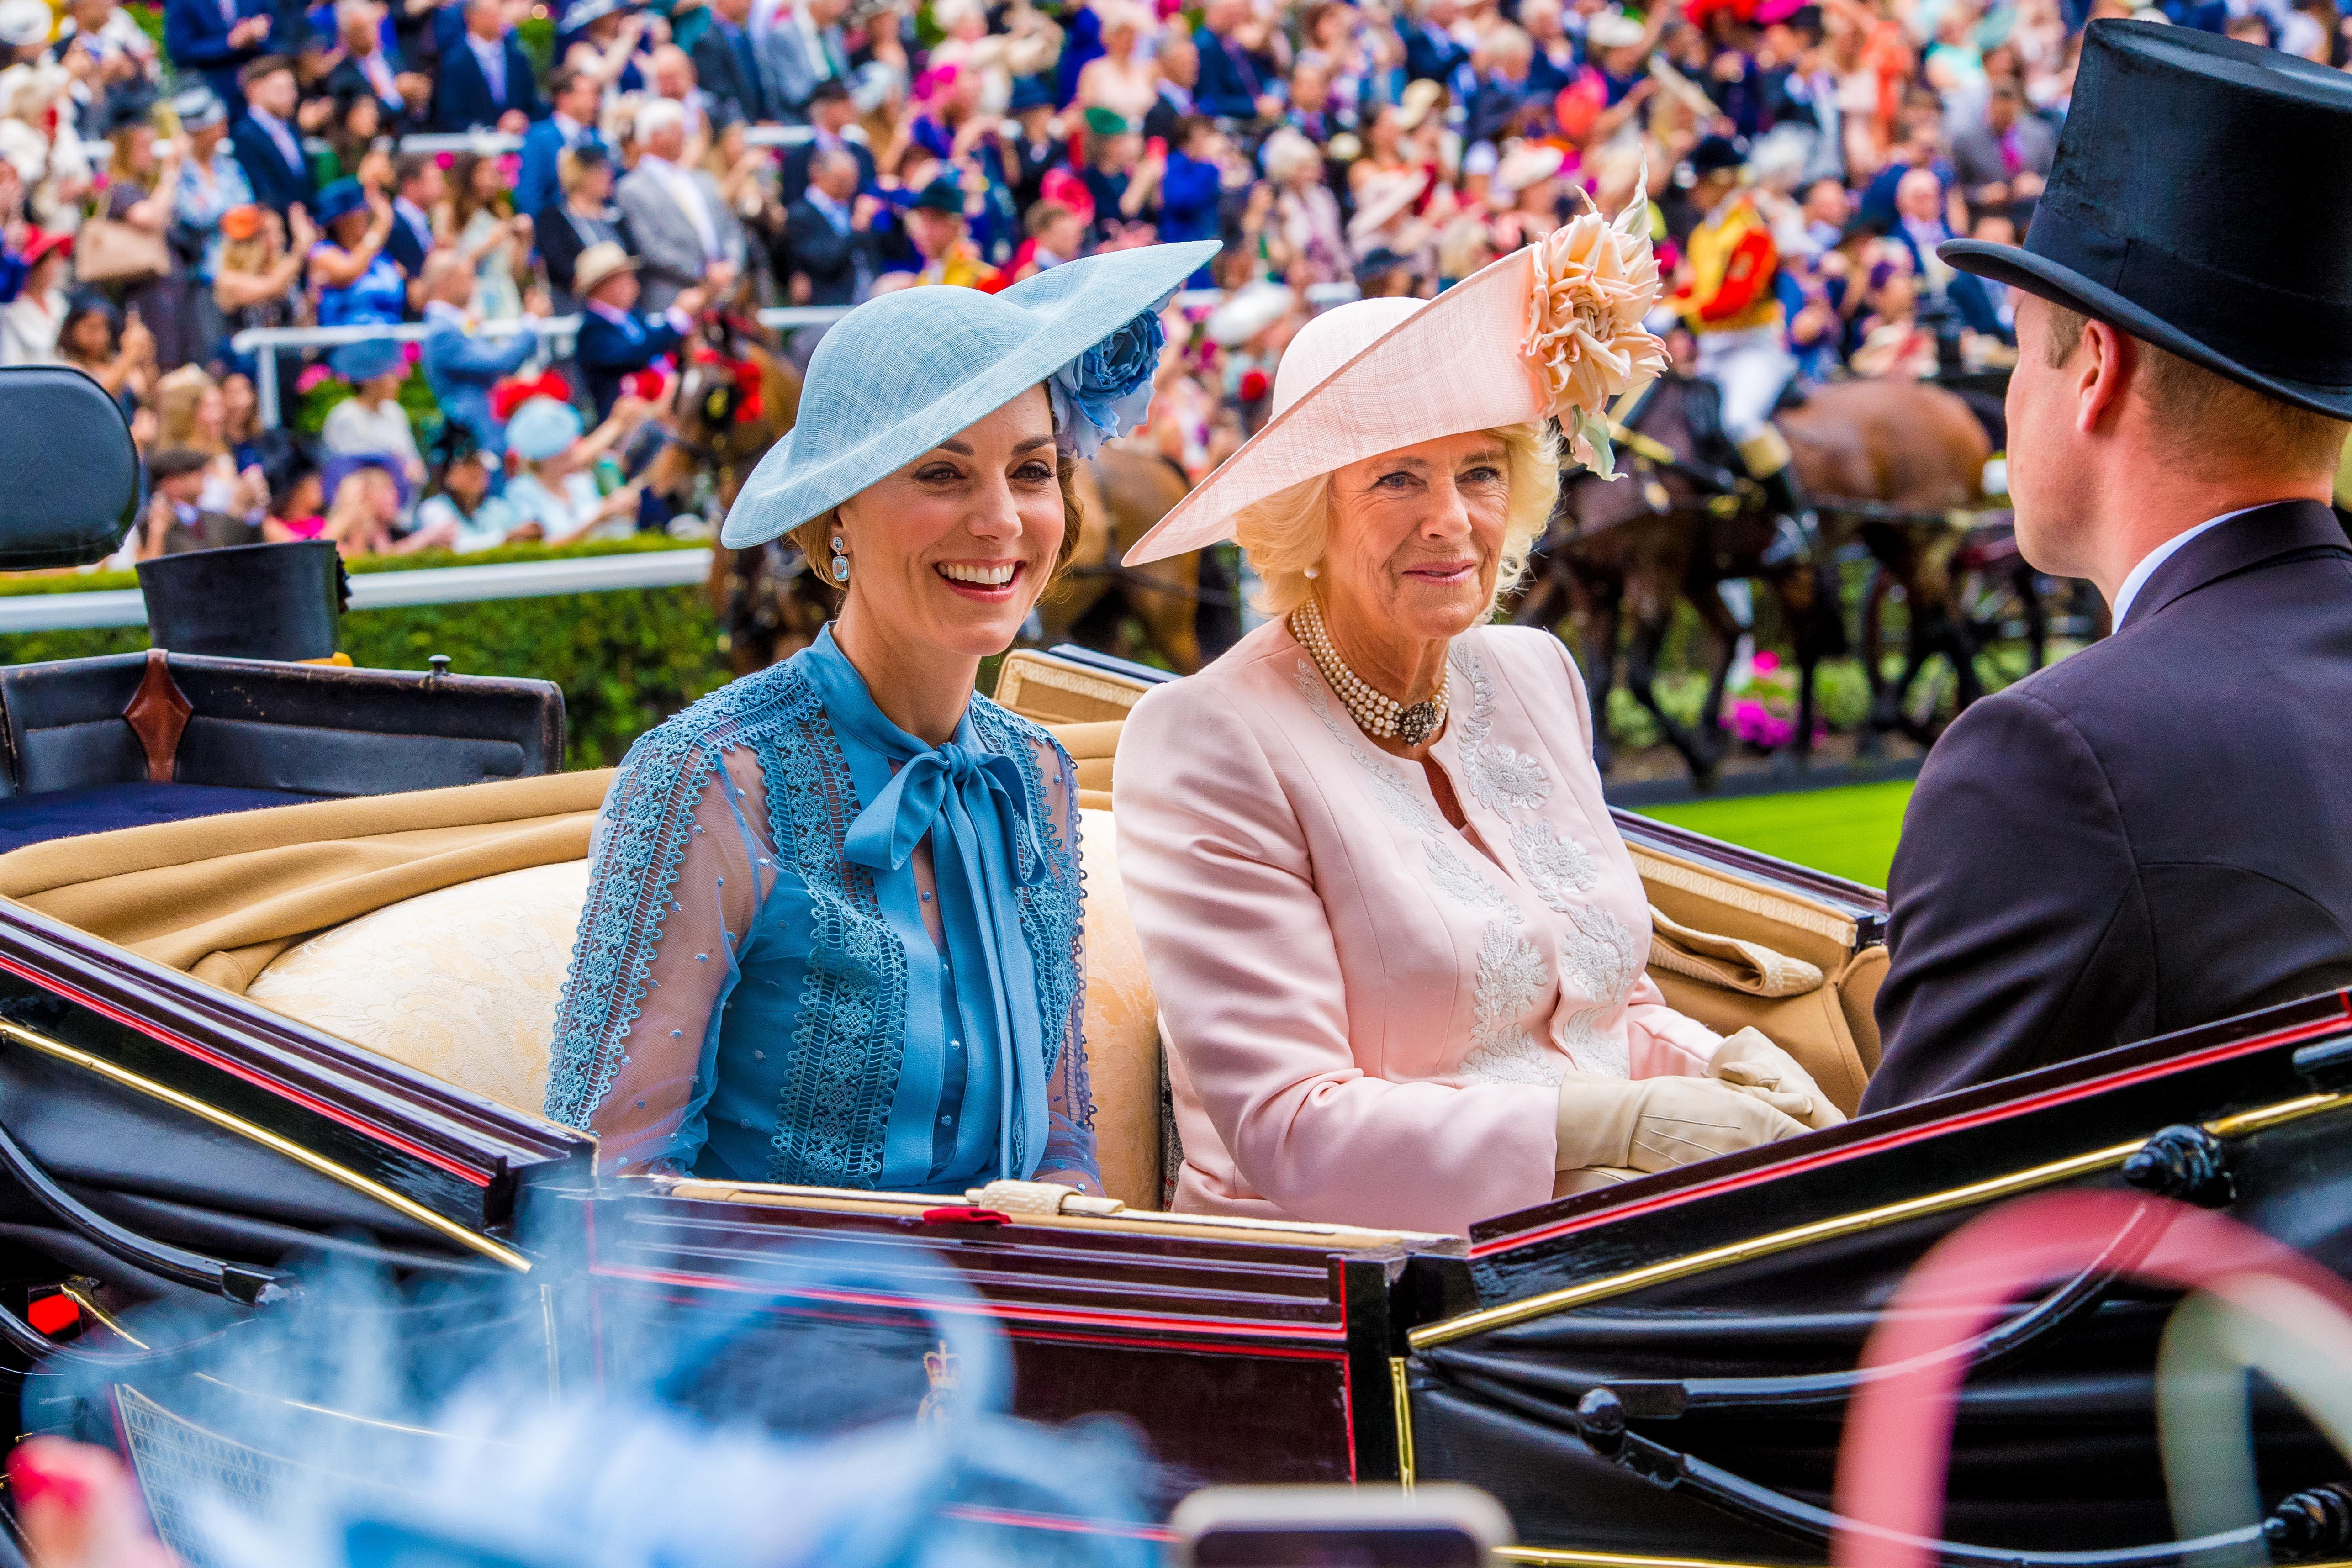 0a5b2edbeec6 Why Does the Royal Family Wear Their Biggest Hats to the Royal Ascot?